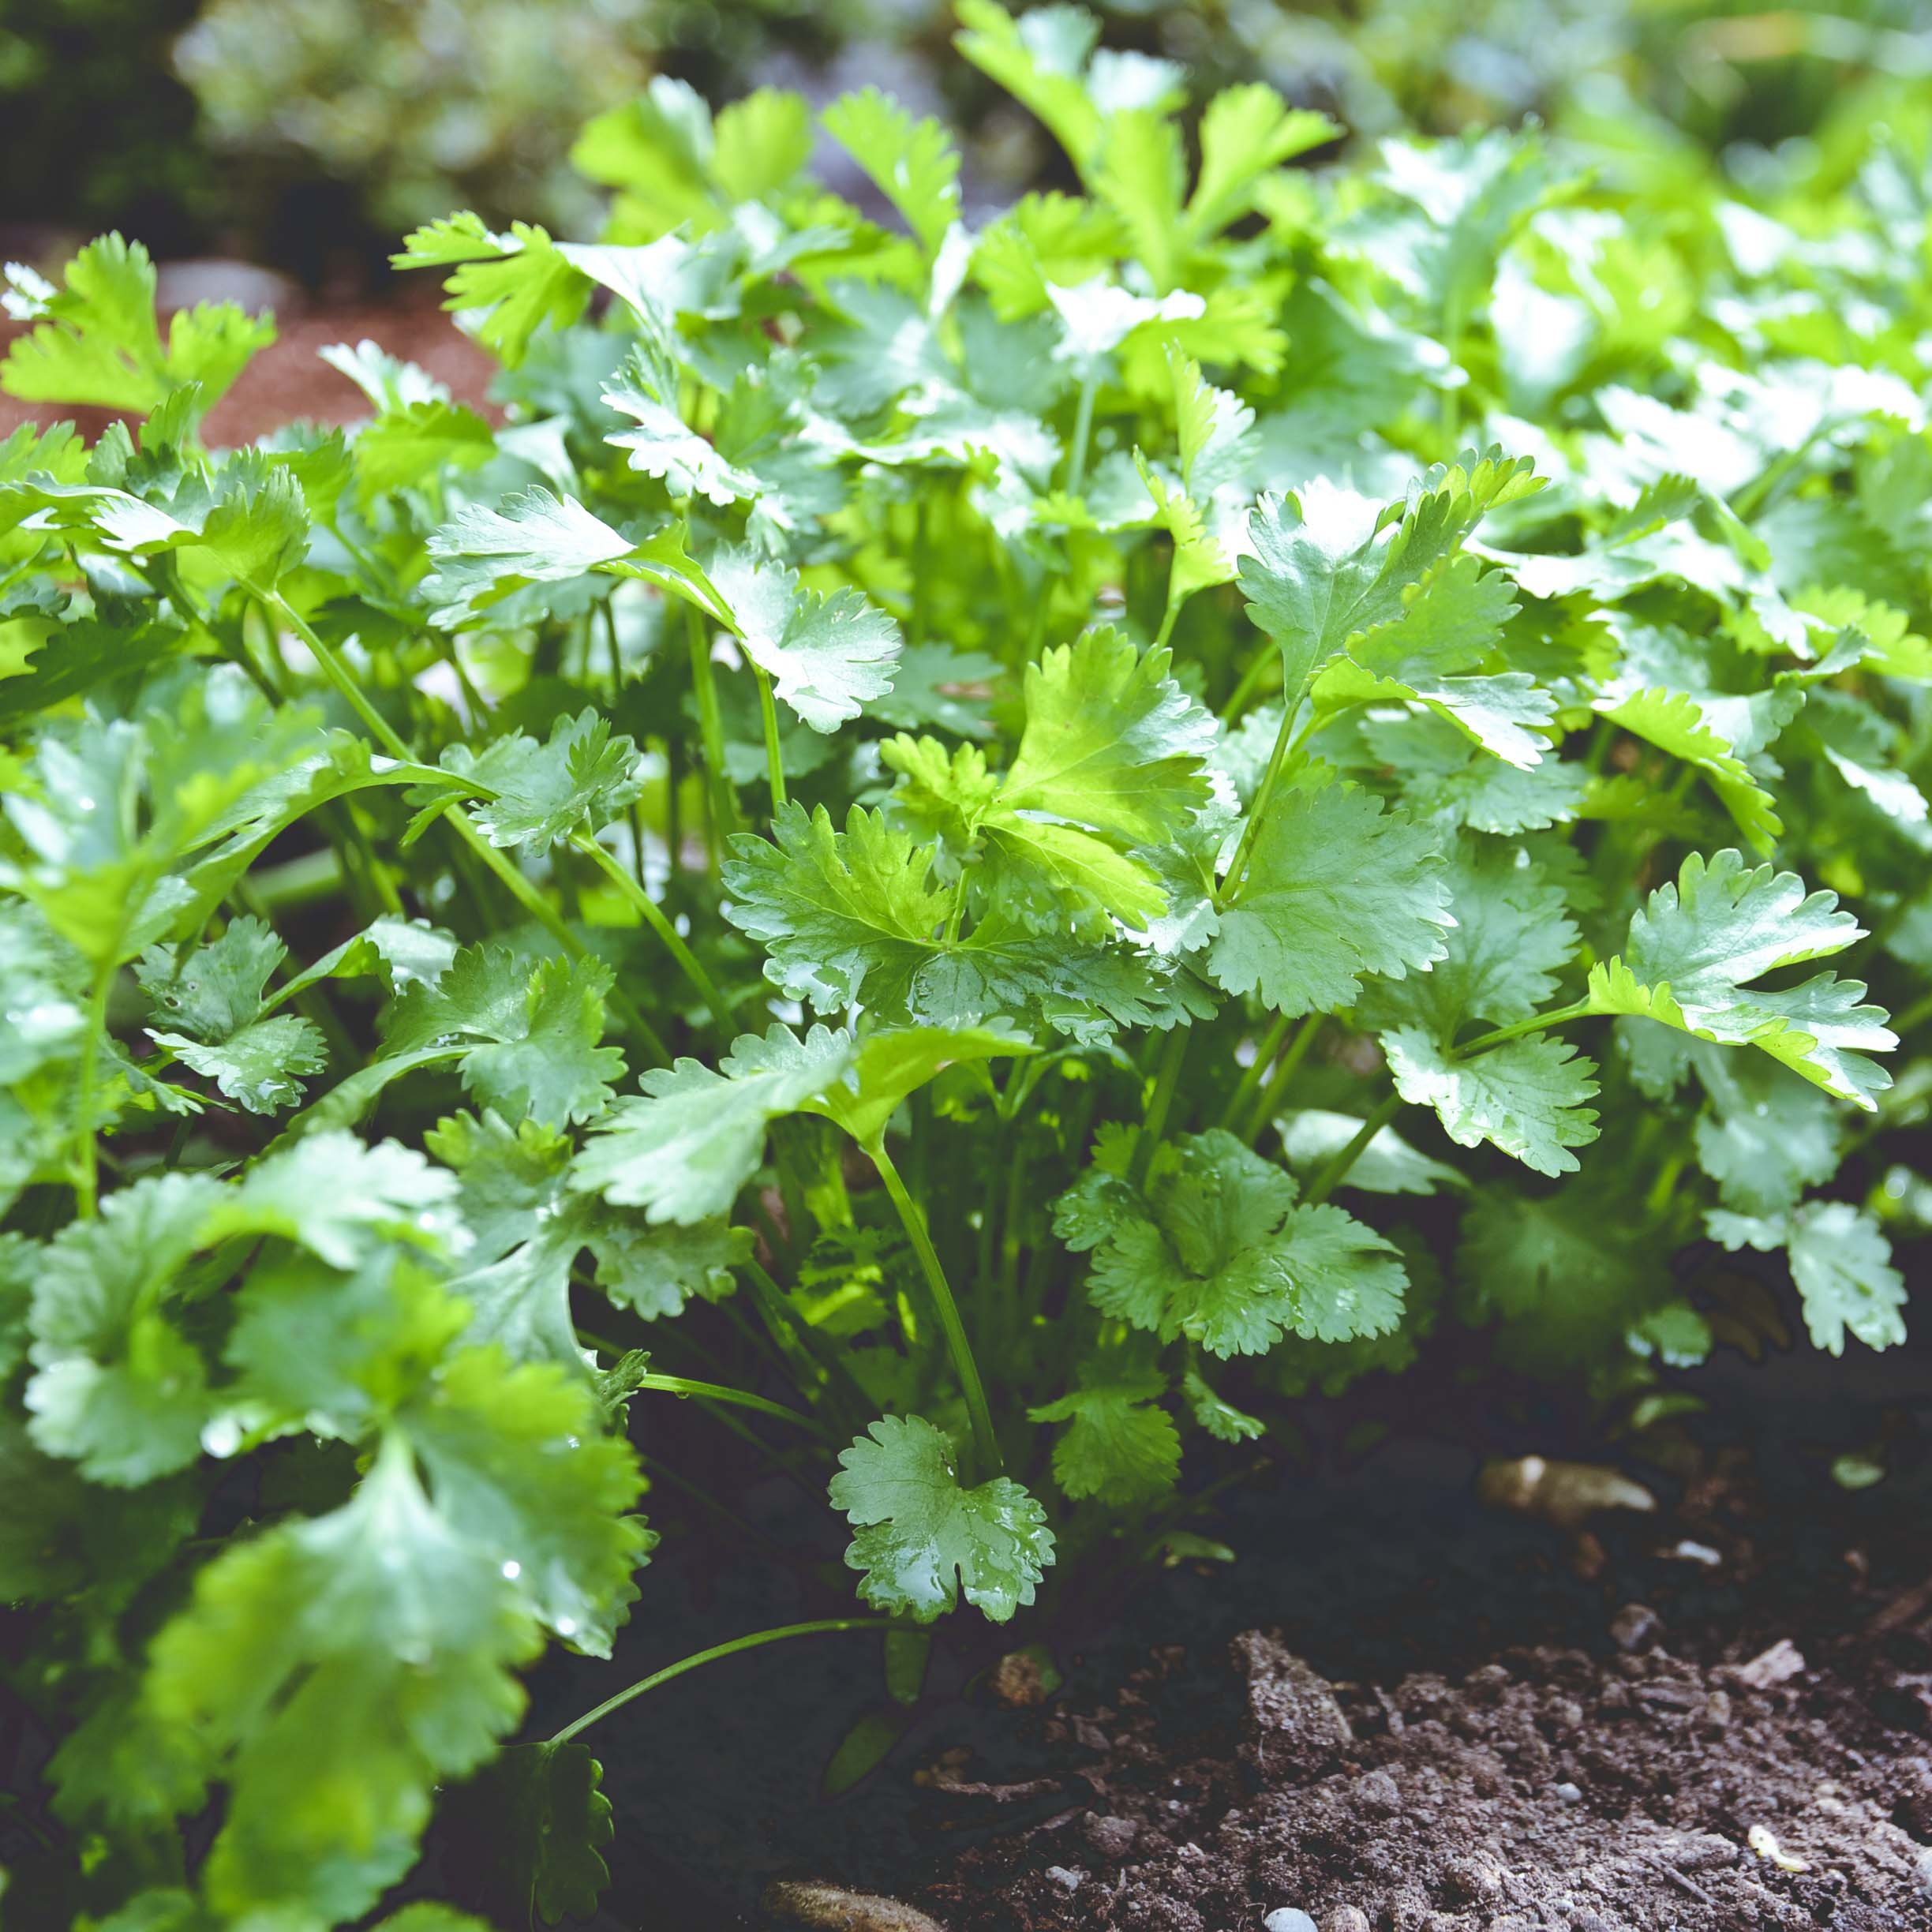 Cilantro    Calypso*  //  Cilantro is a hardy fall crop but is not frost tolerant. If temperatures dip into the 30's, the leaves will start to loose their color, flavor and texture.